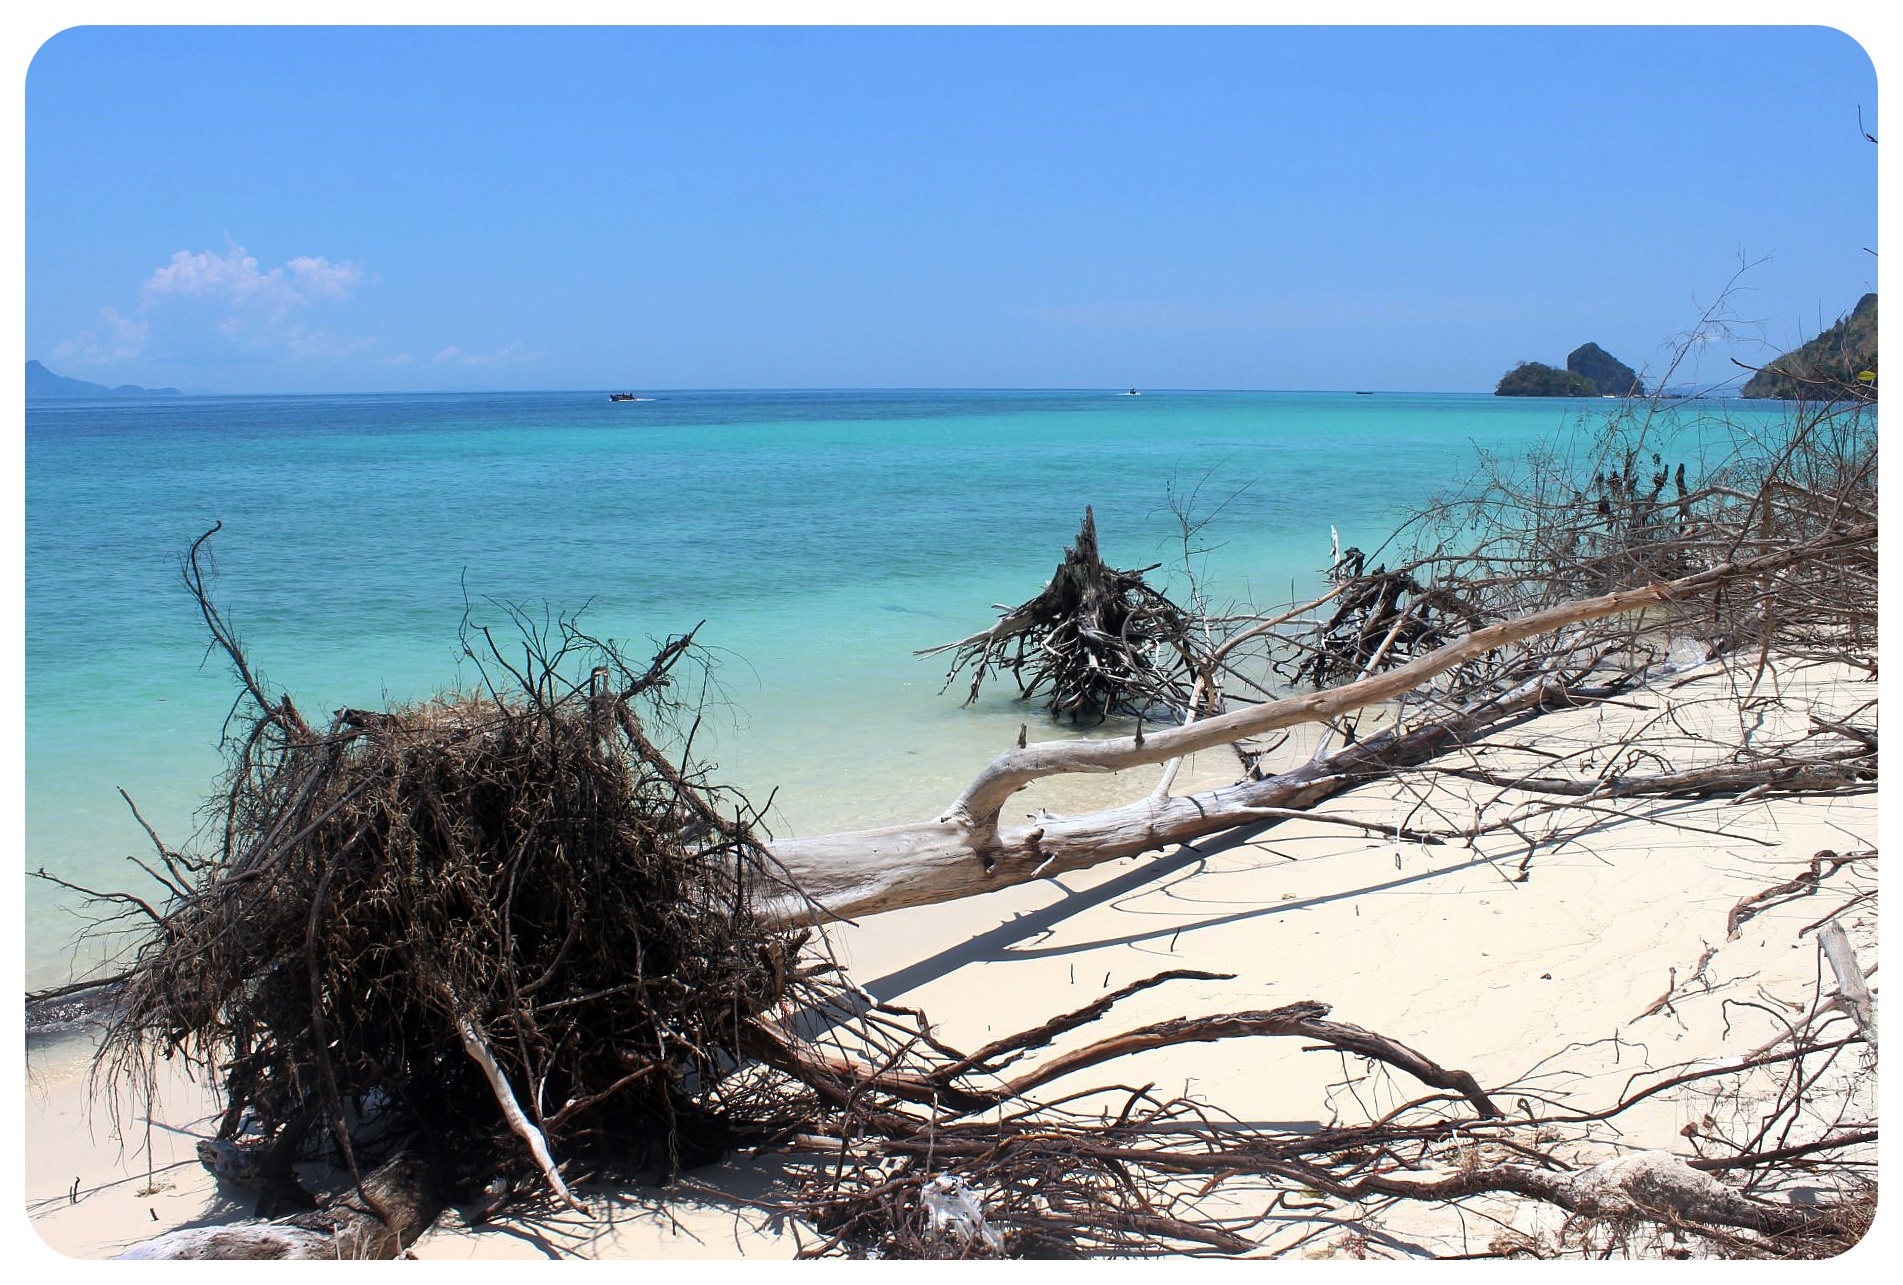 koh poda tree trunks and beach